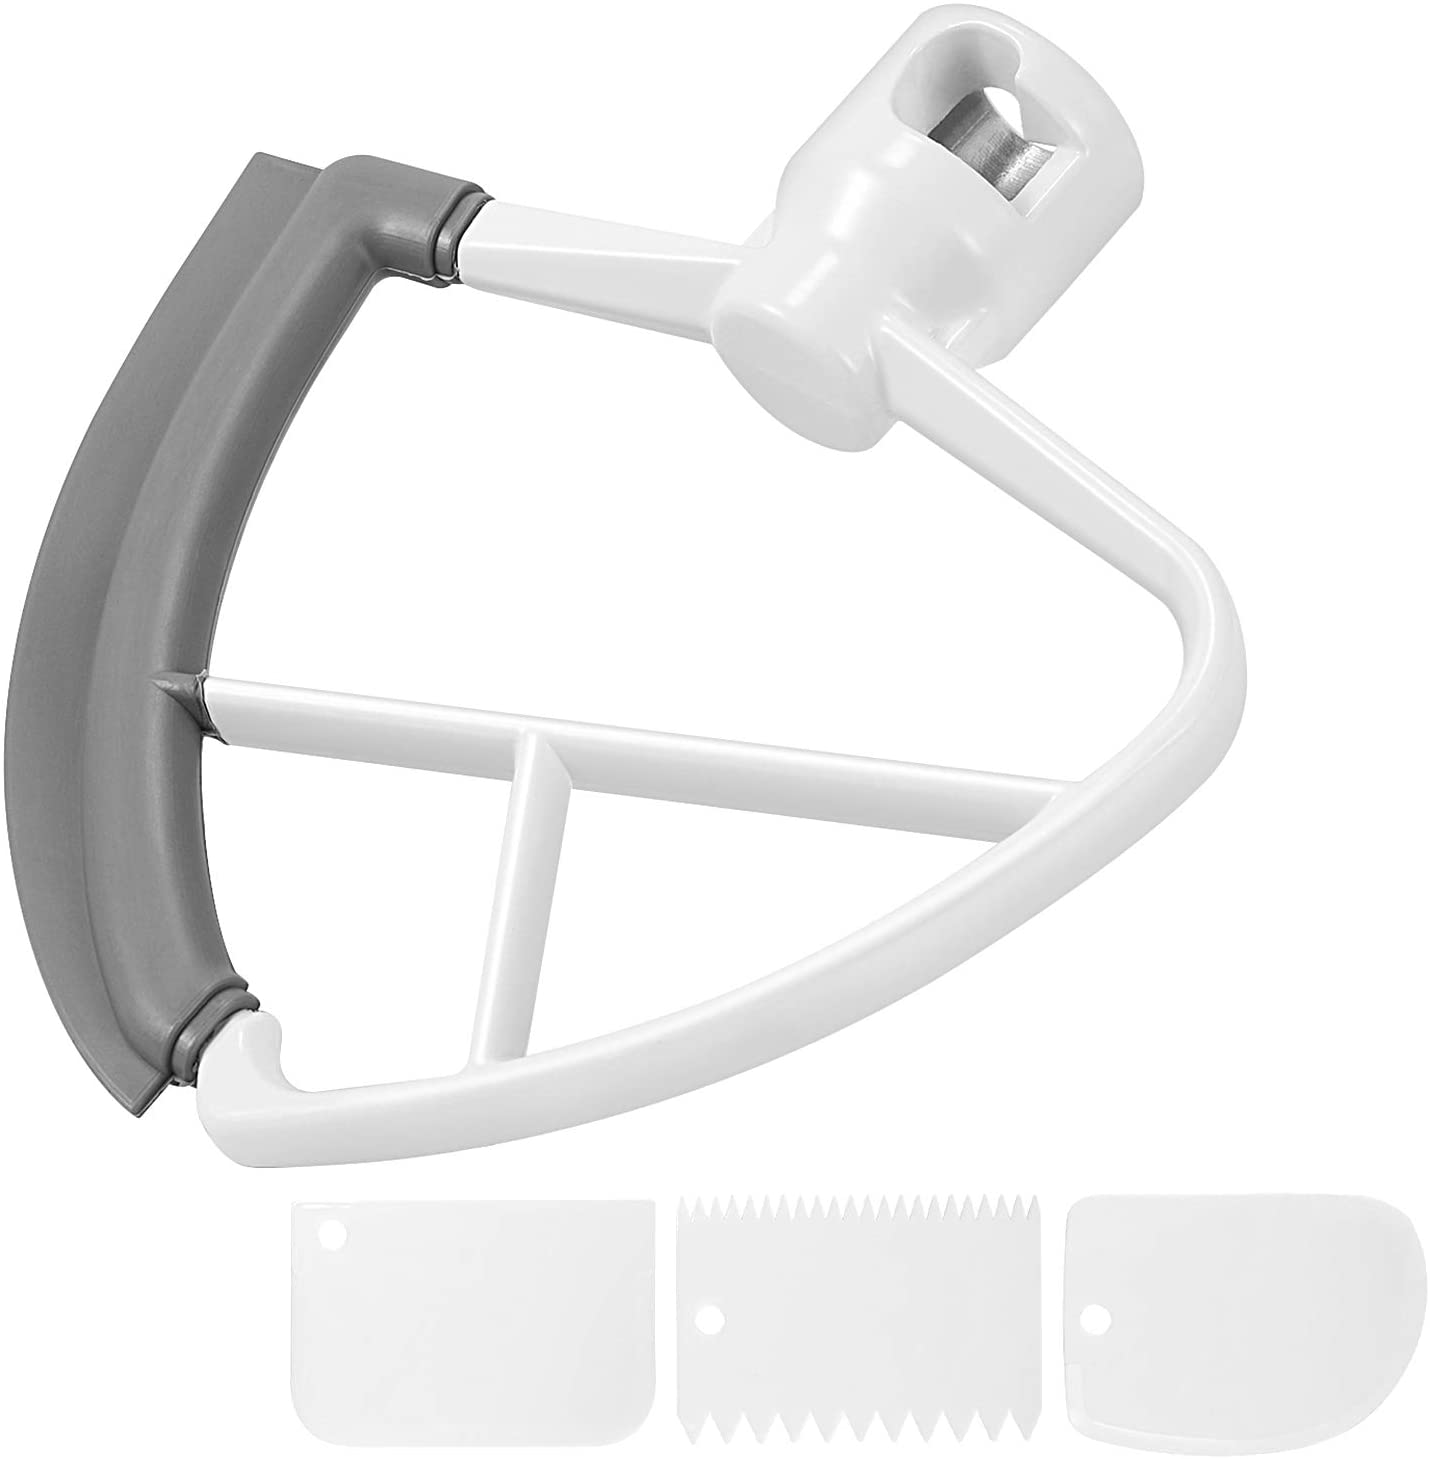 Flex Edge Beater, ONME Mixer Attachment 4.5-5 Quart Tilt-Head Stand Mix Accessory for KitchenAid Stand Mixers with 3 Scrapers